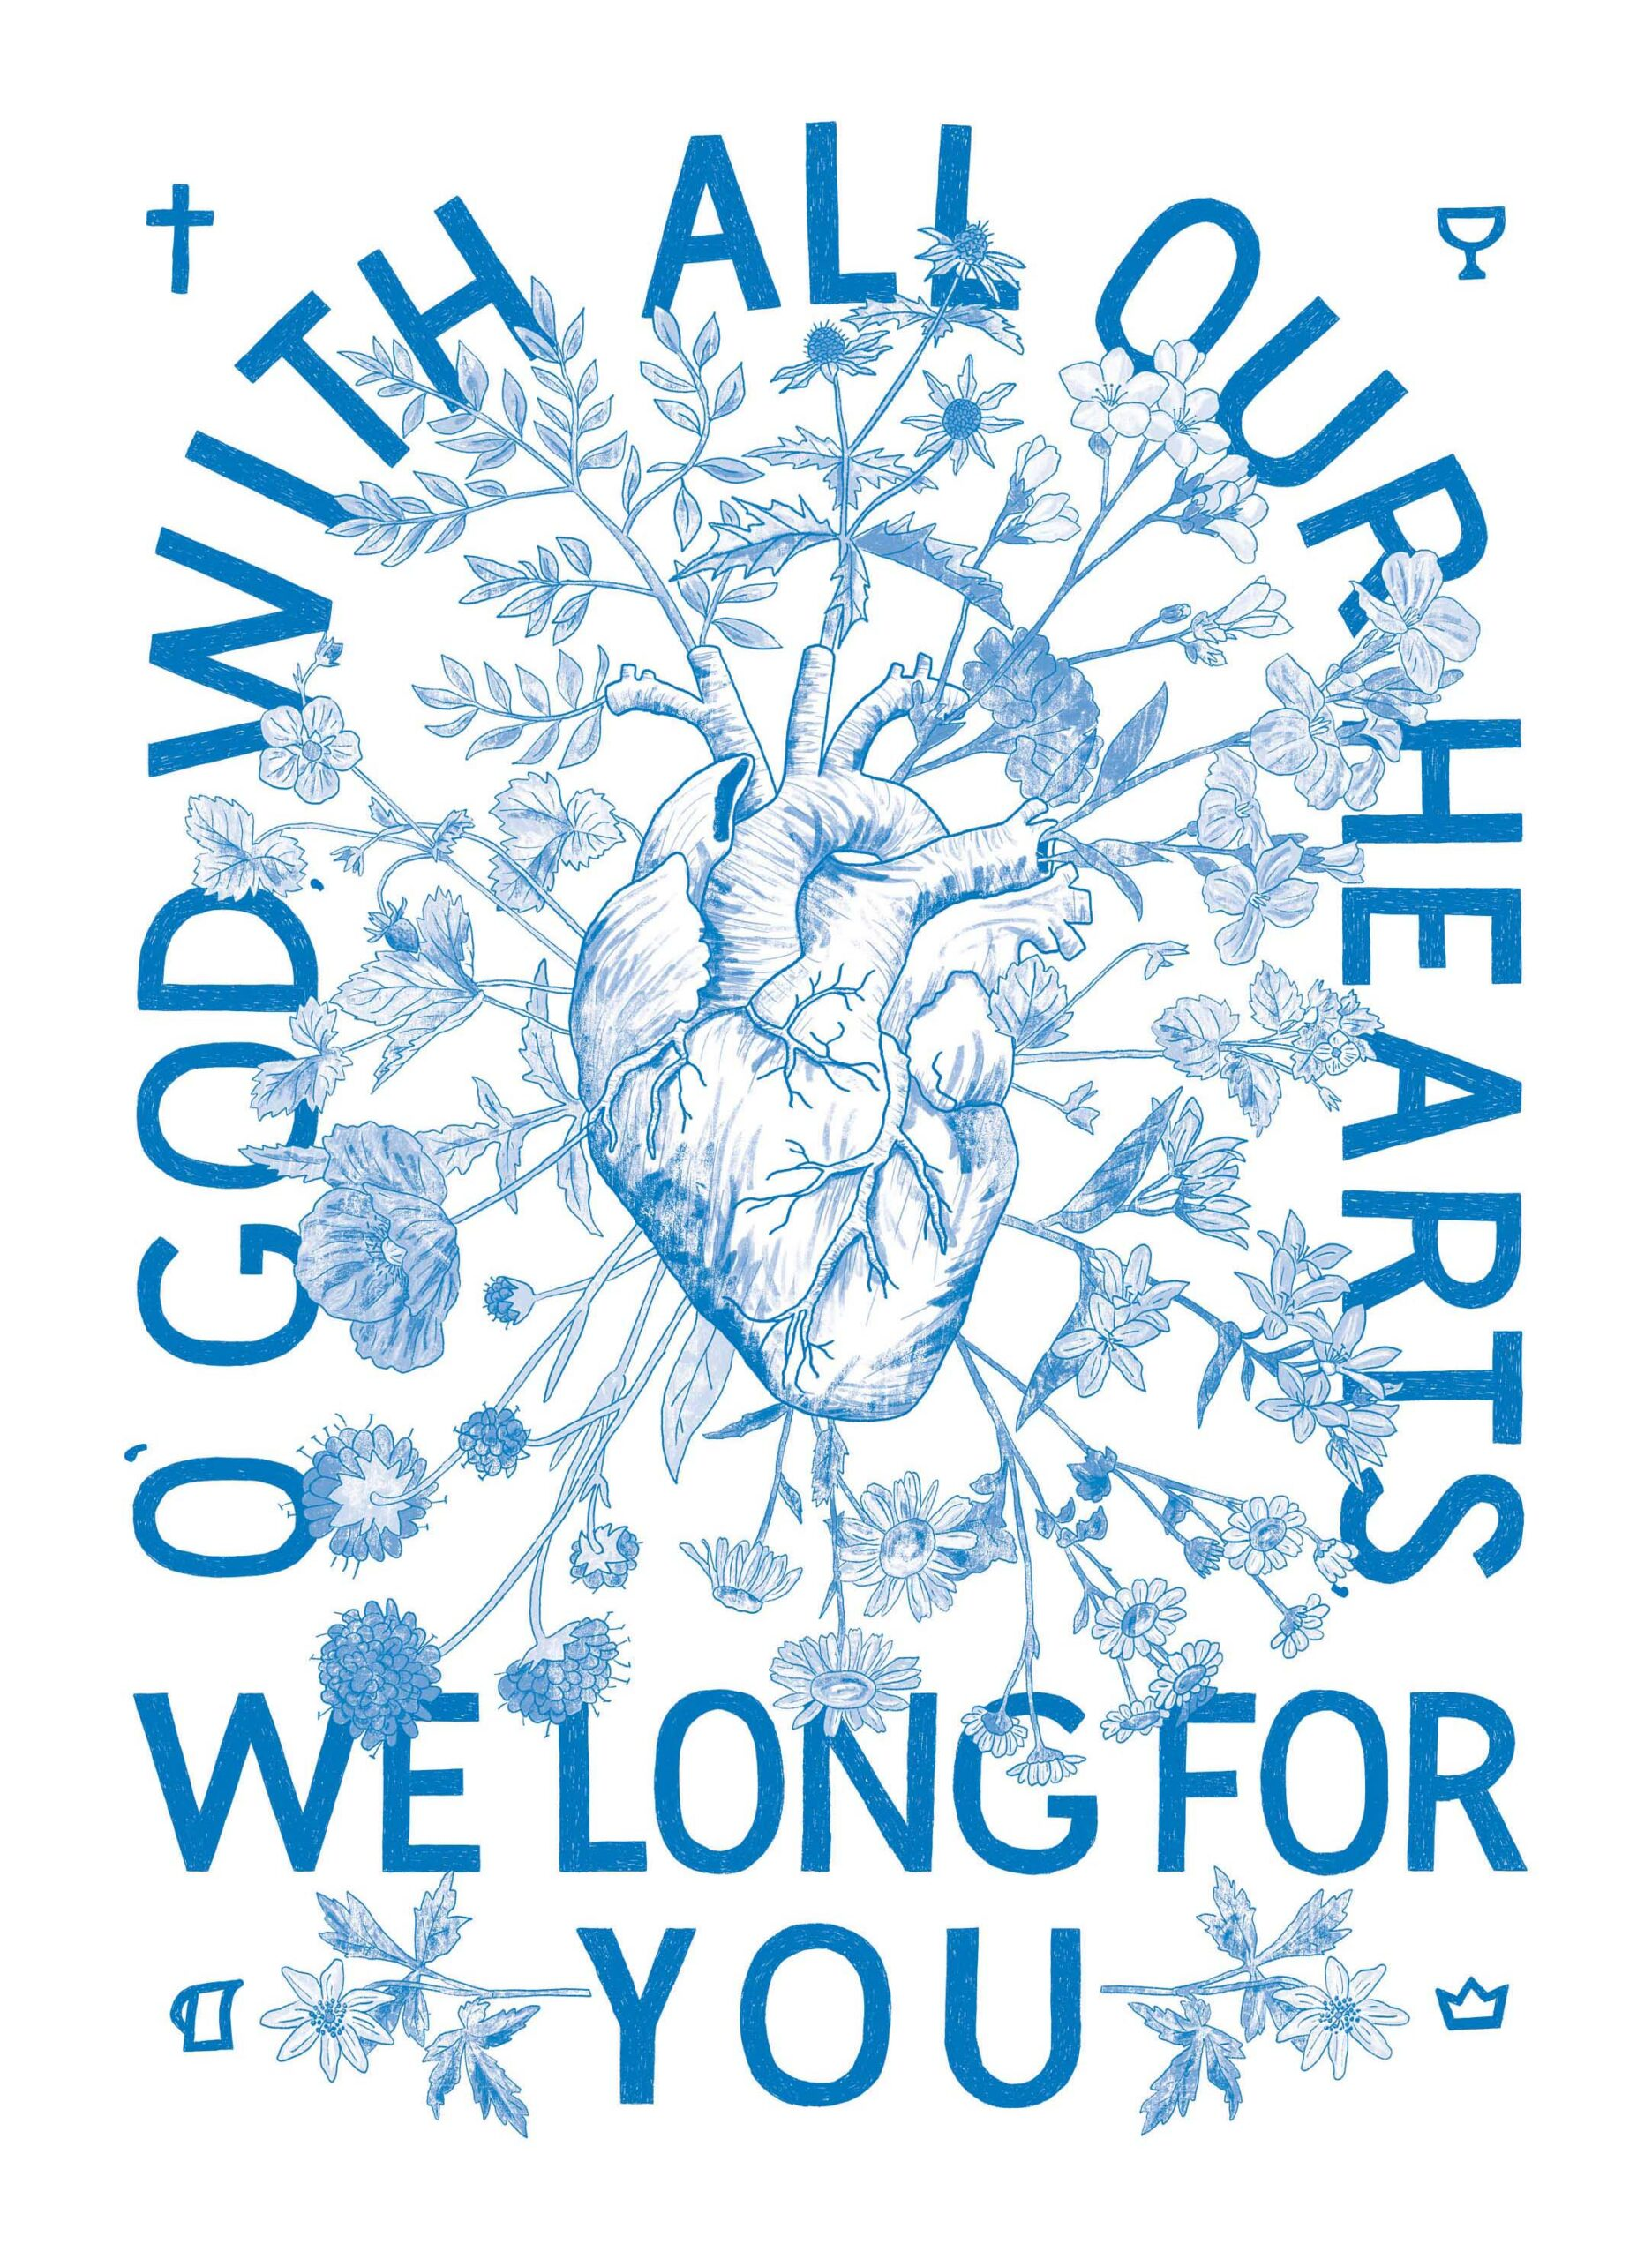 The Alliance Canada Vision Prayer. Hand lettered illustration of a heart with flowers growing from it that reads O God, with all our hearts we long for you.